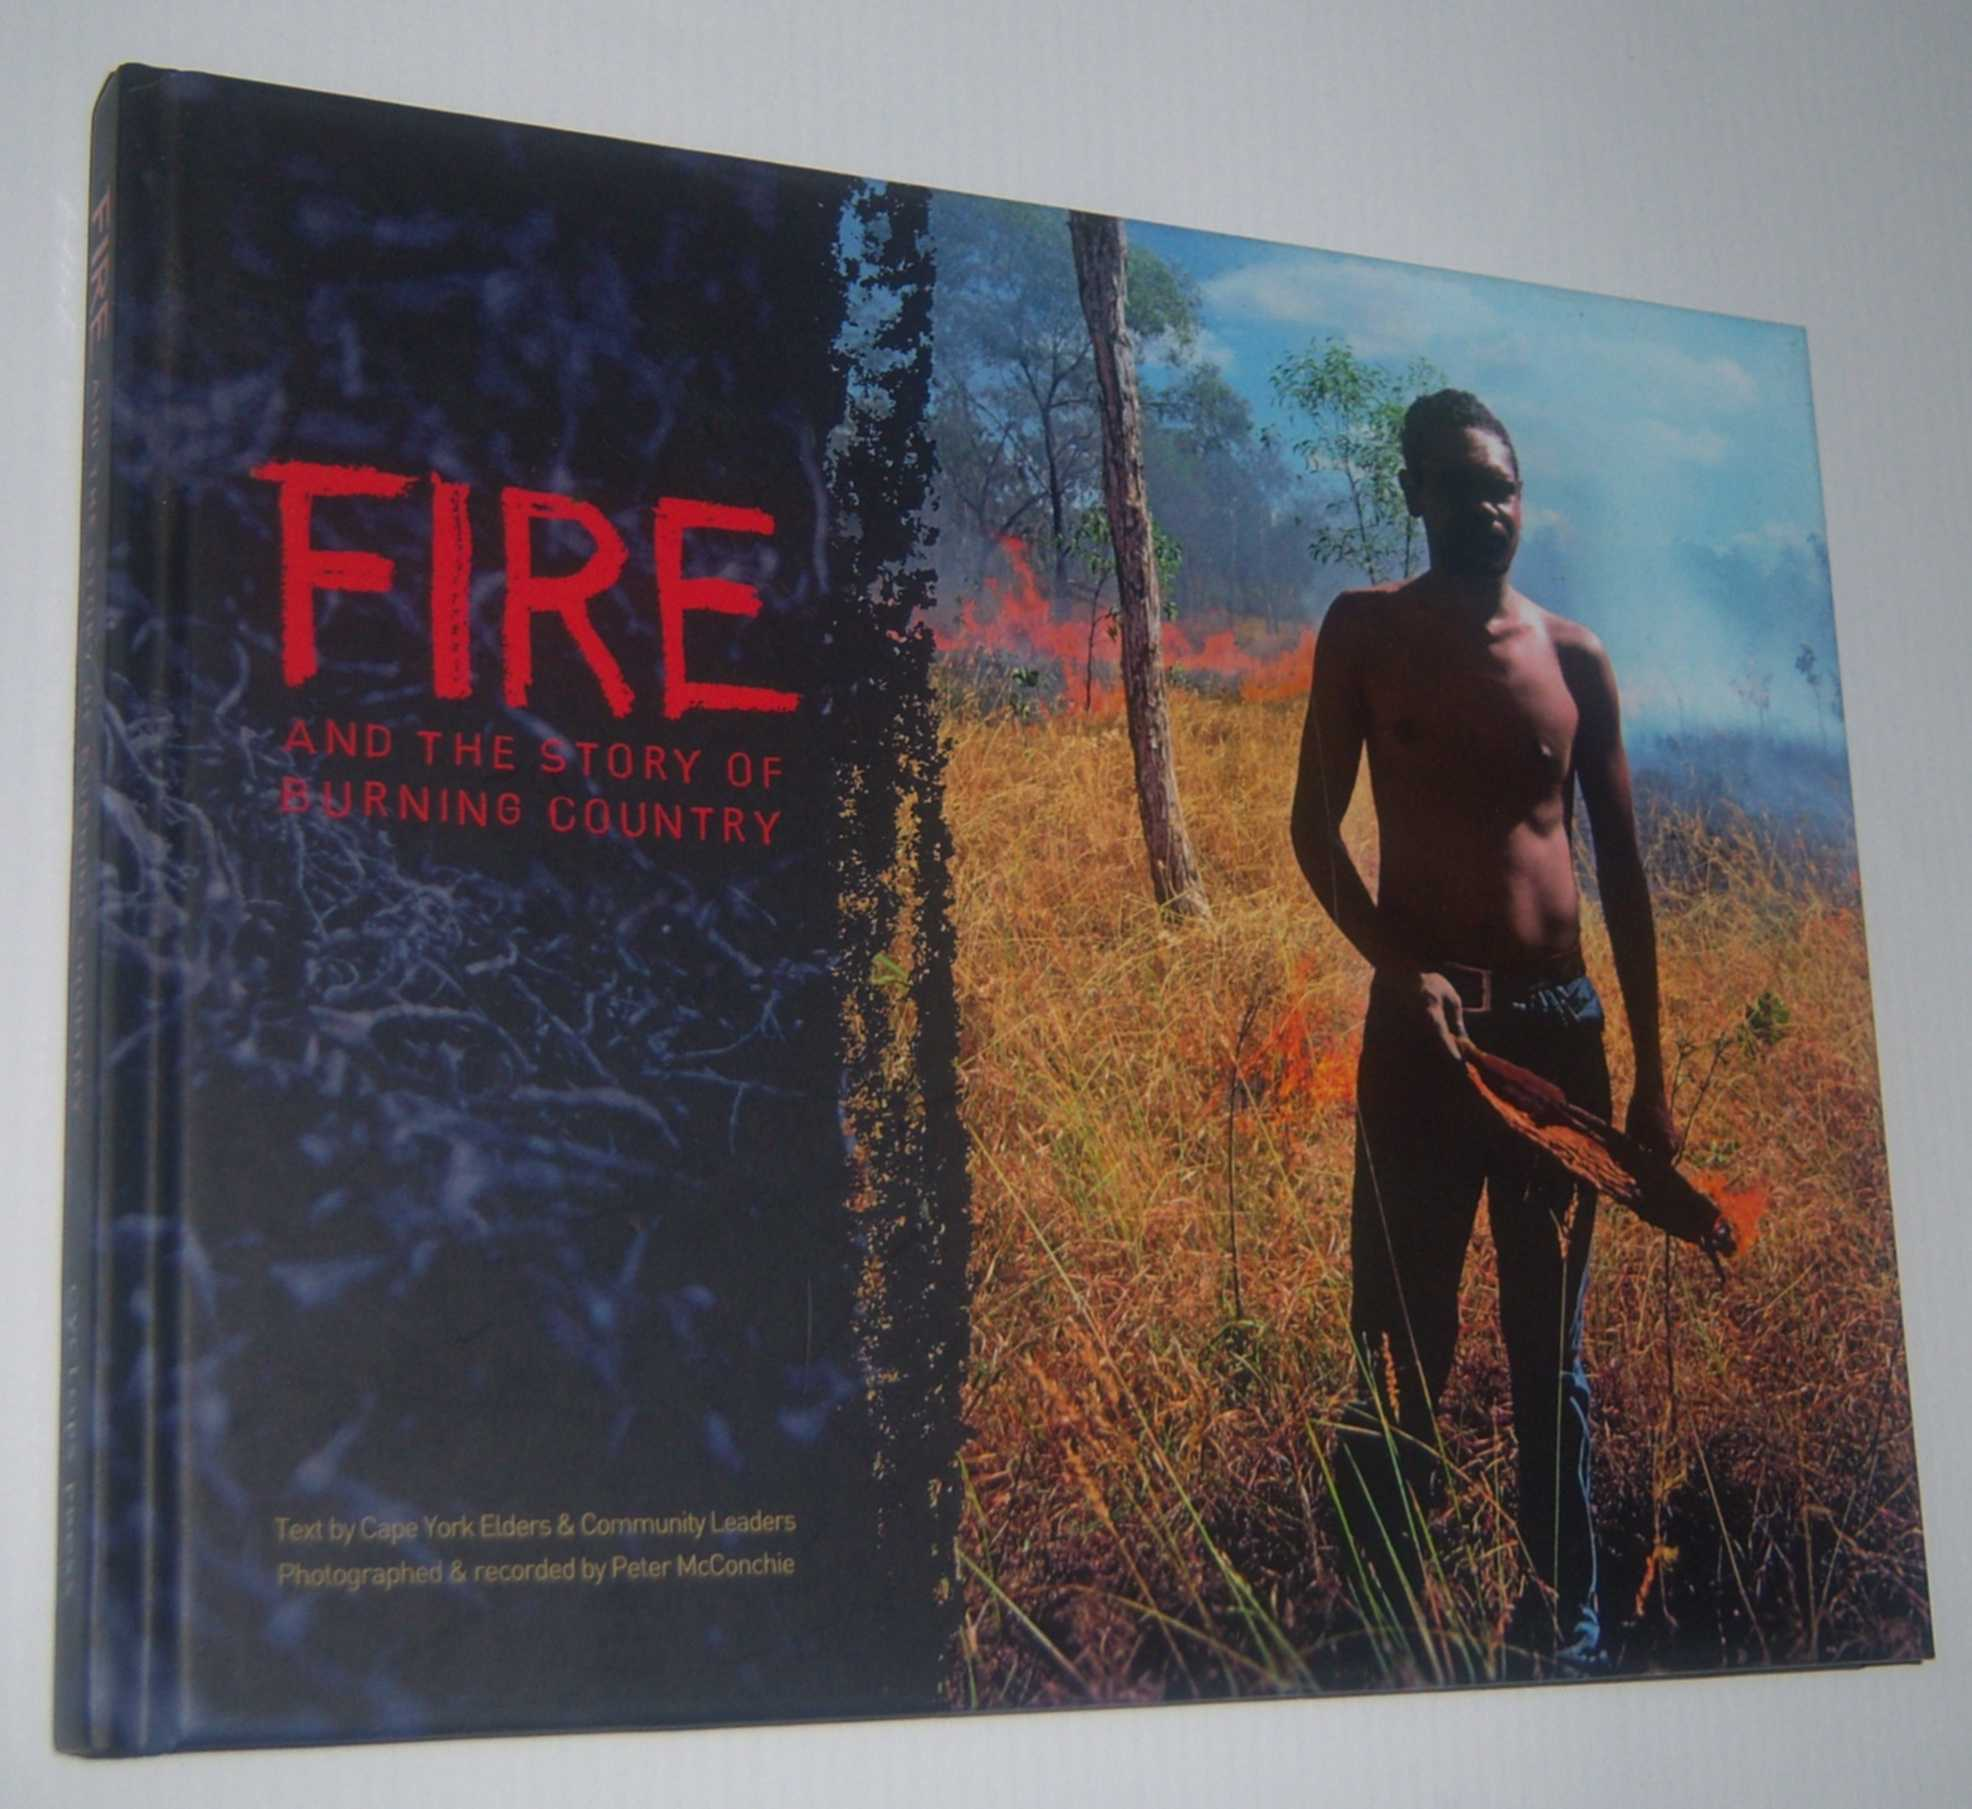 Image for FIRE AND THE STORY OF BURNING COUNTRY (Signed Copy)